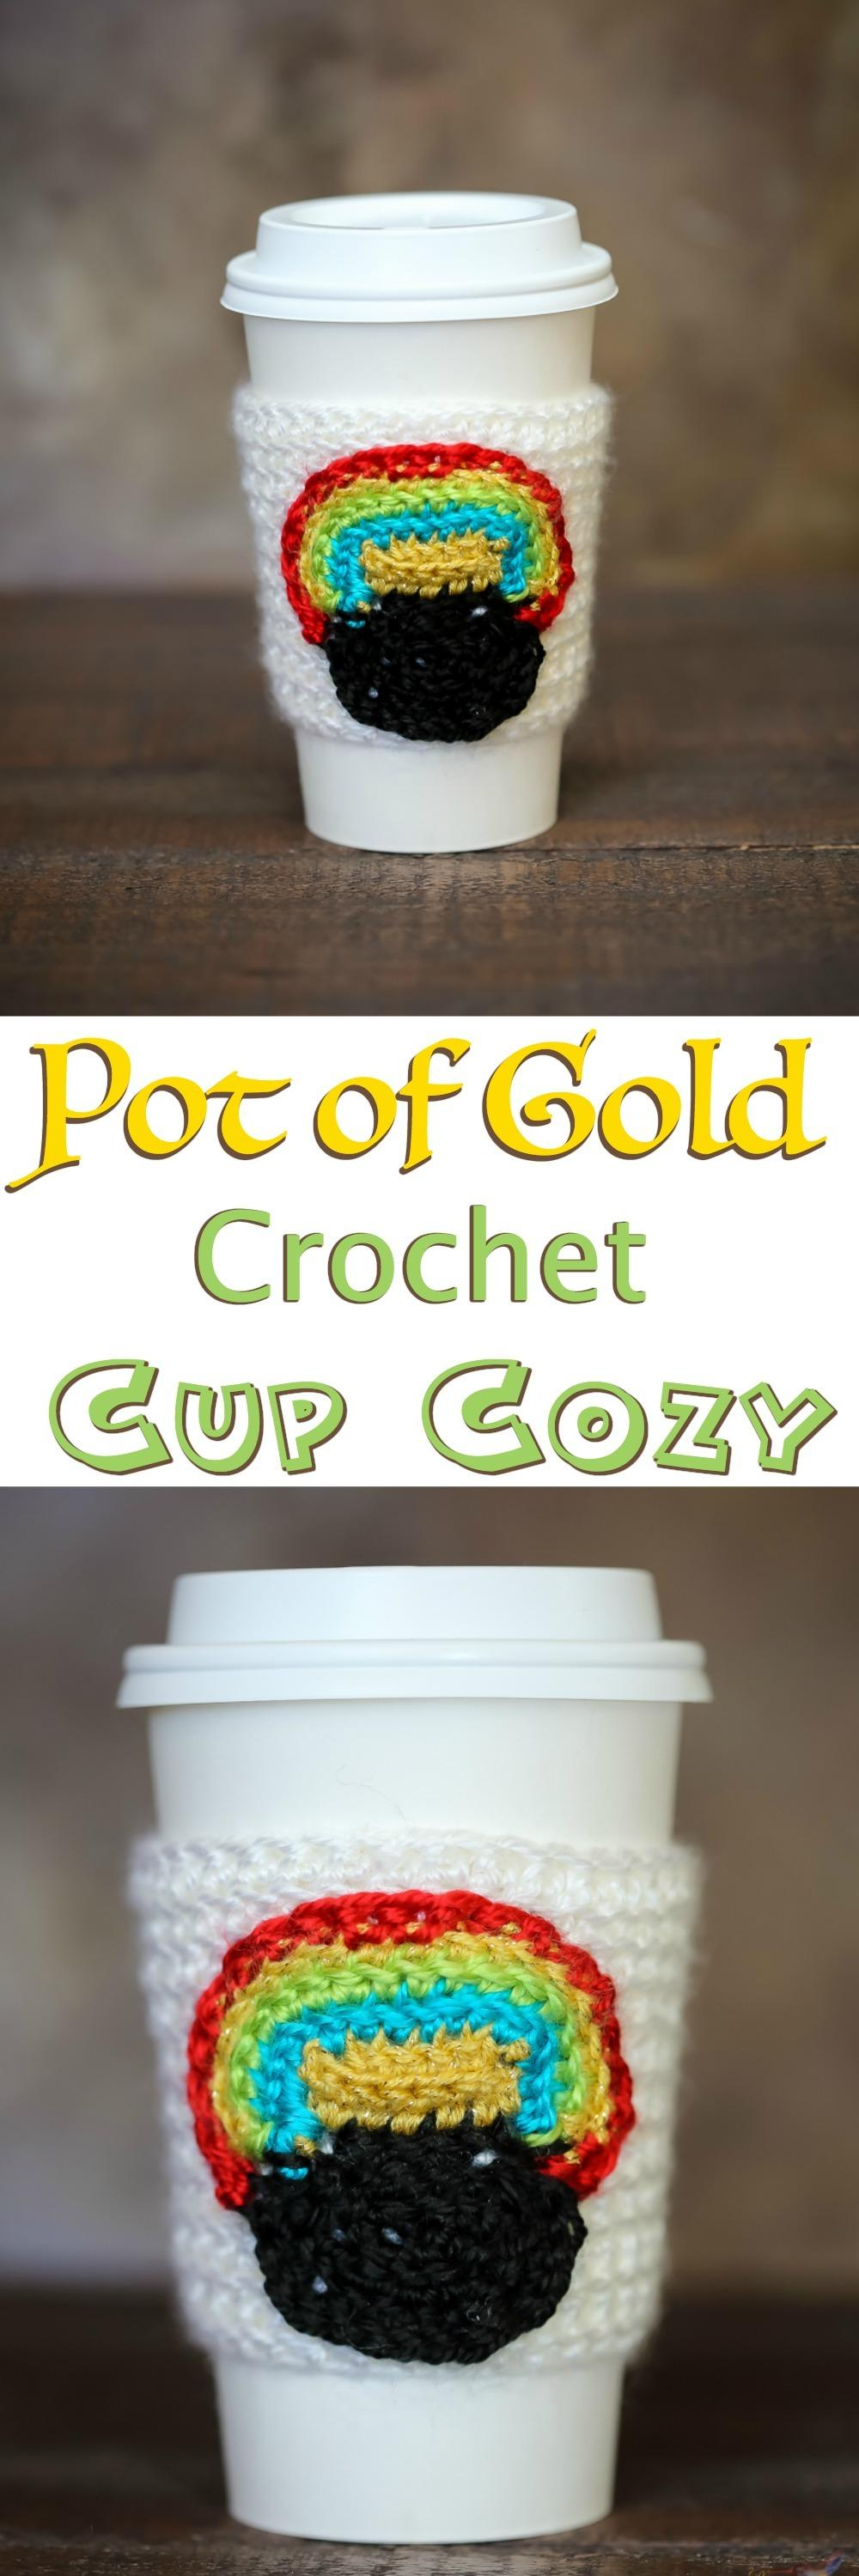 An Easy and free crochet pattern for a Pot of Gold Cup Crochet Cozy! Perfect for insulating your hot cocoa or as a Hot coffee sleeve on St. Patrick's Day! This DIY crochet projects Fits a Starbucks Grande Cup!